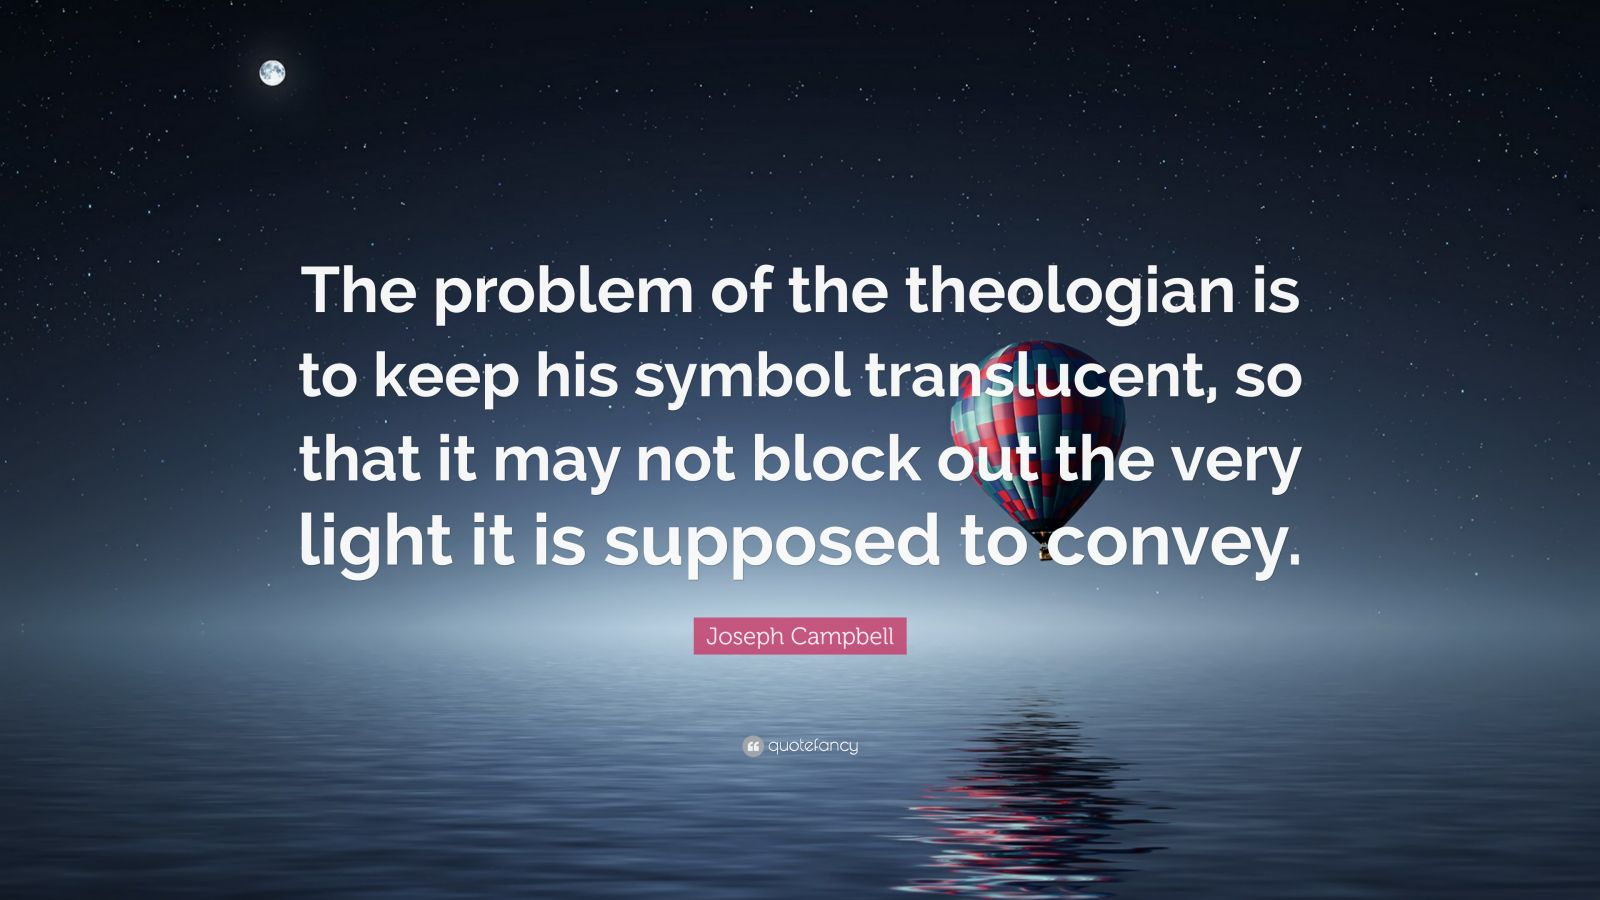 """Joseph Campbell Quote: """"The problem of the theologian is to keep his symbol translucent, so that it may not block out the very light it is supposed to convey."""""""